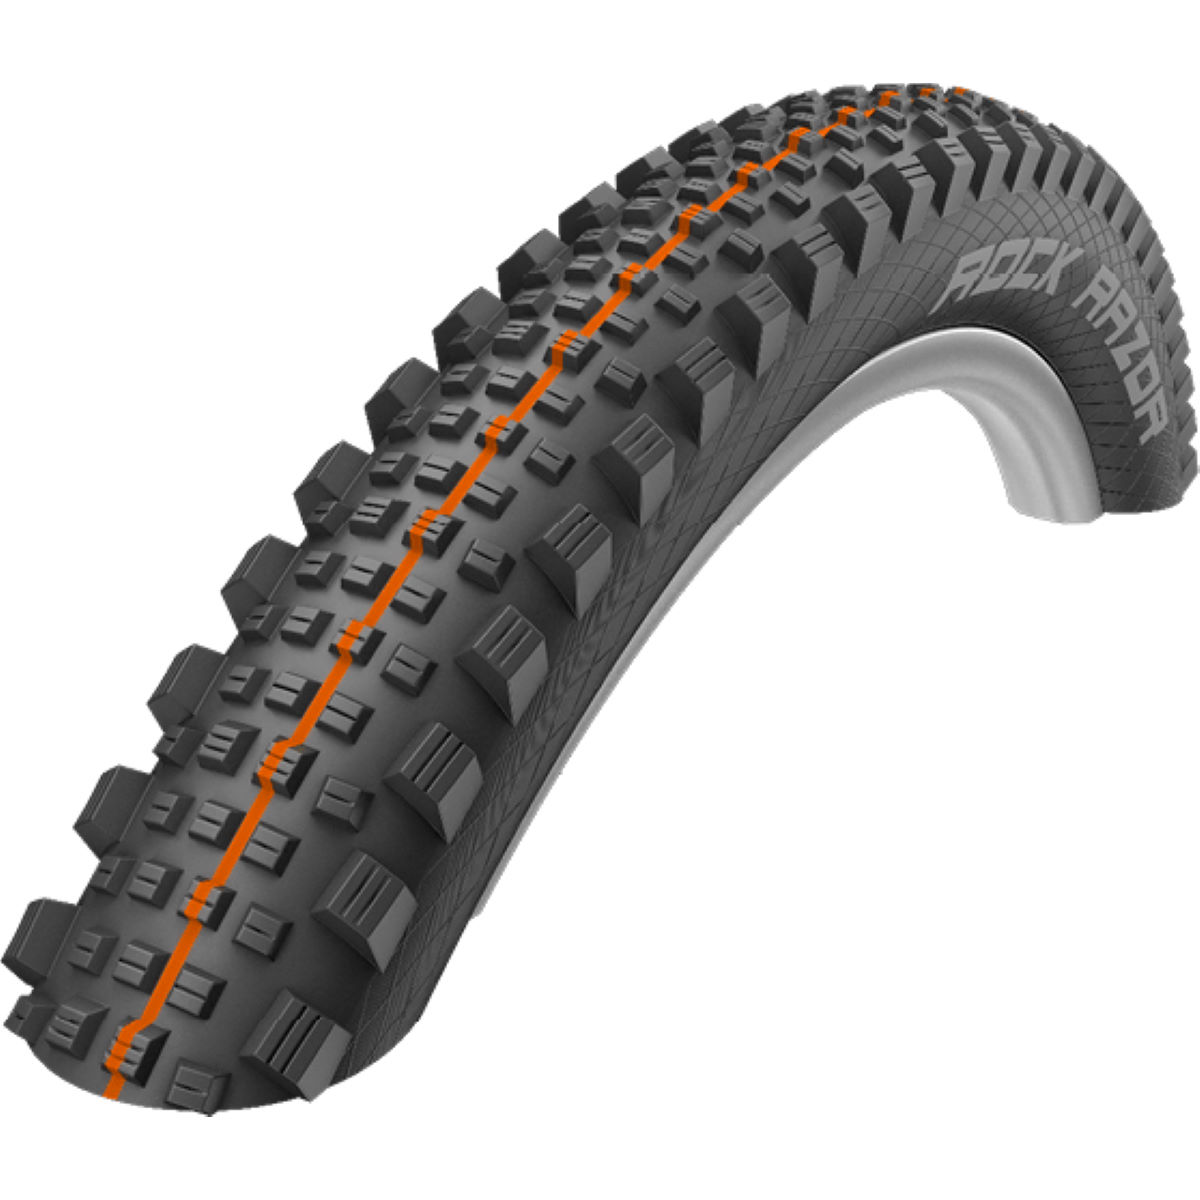 Pneu VTT Schwalbe Rock Razor Addix SuperGravity - 2.35'' Pneus